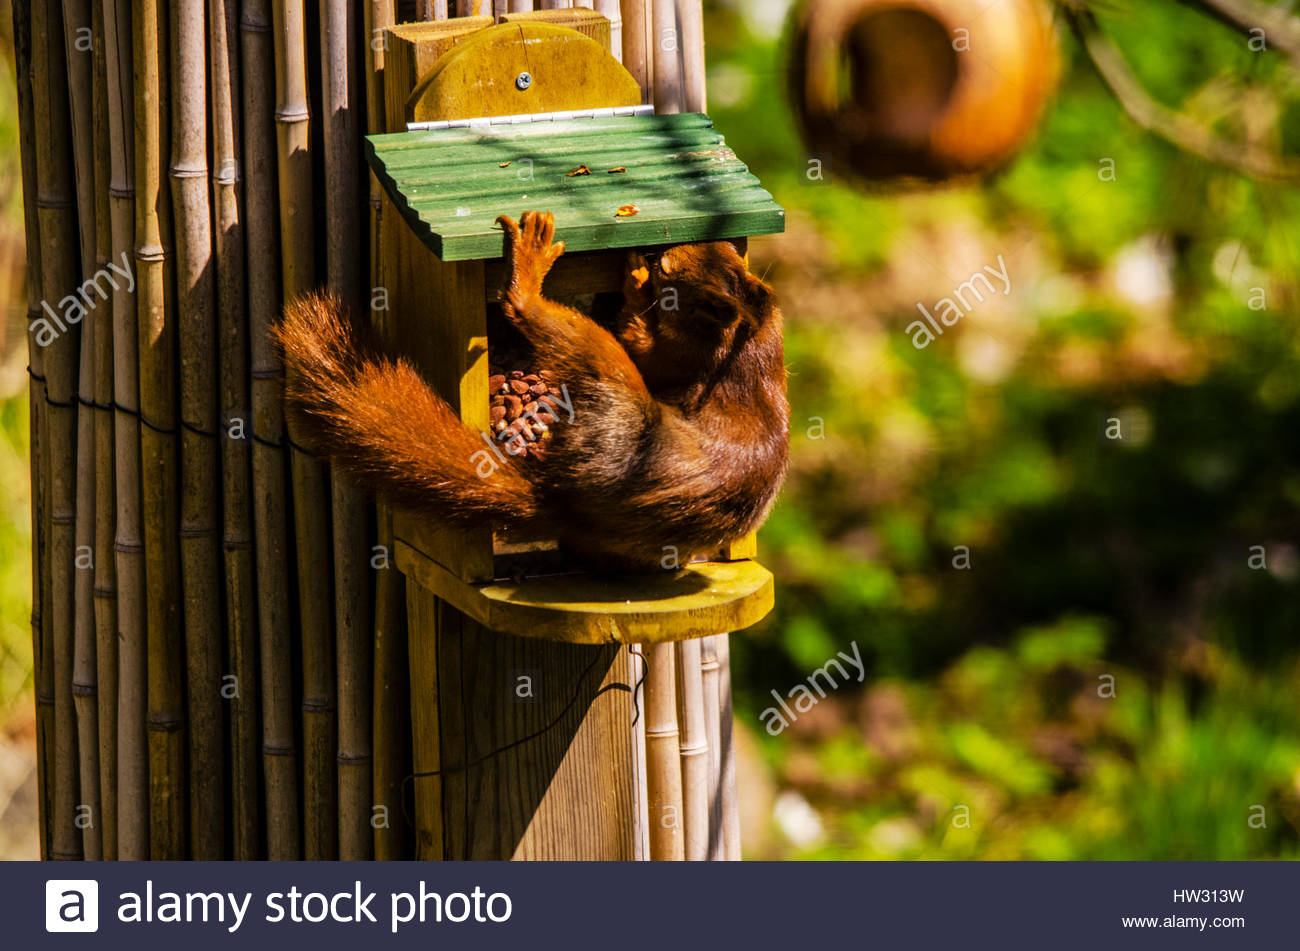 Squirrel eating from his own feeder in the garden. - Stock Image